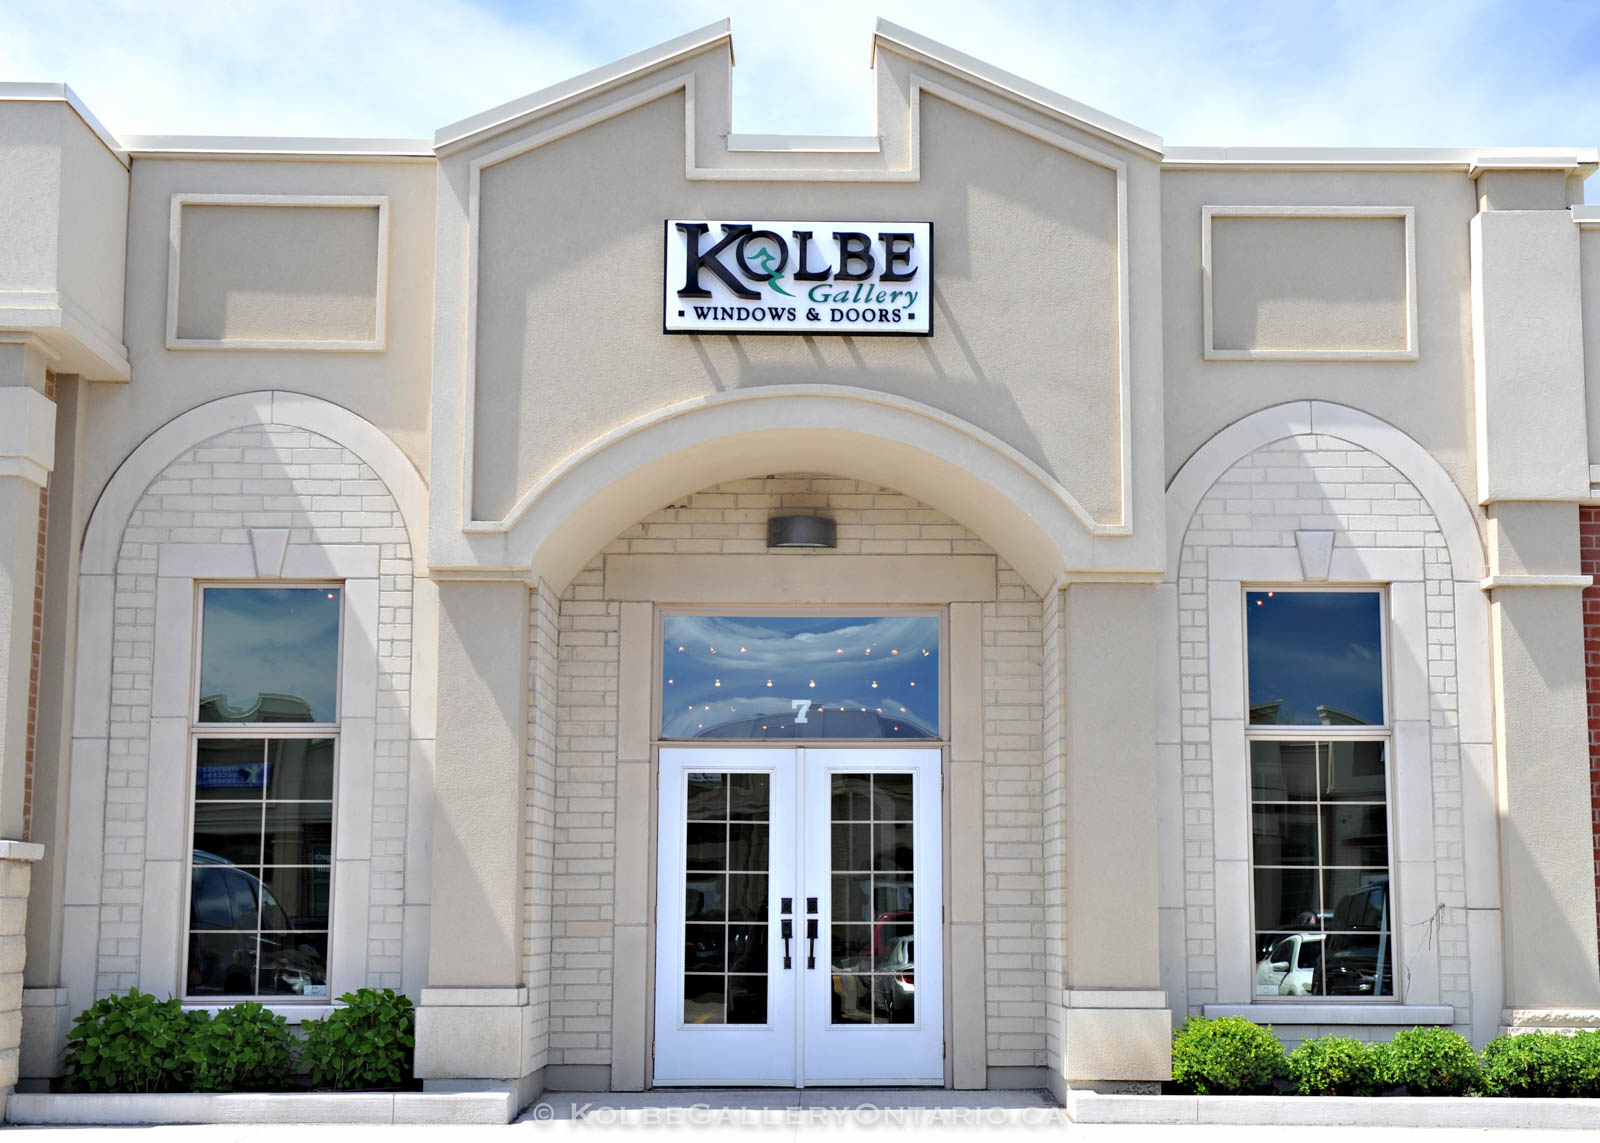 KolbeGalleryOntario.ca-windows-and-doors-Oakville-showroom-20120510-100347